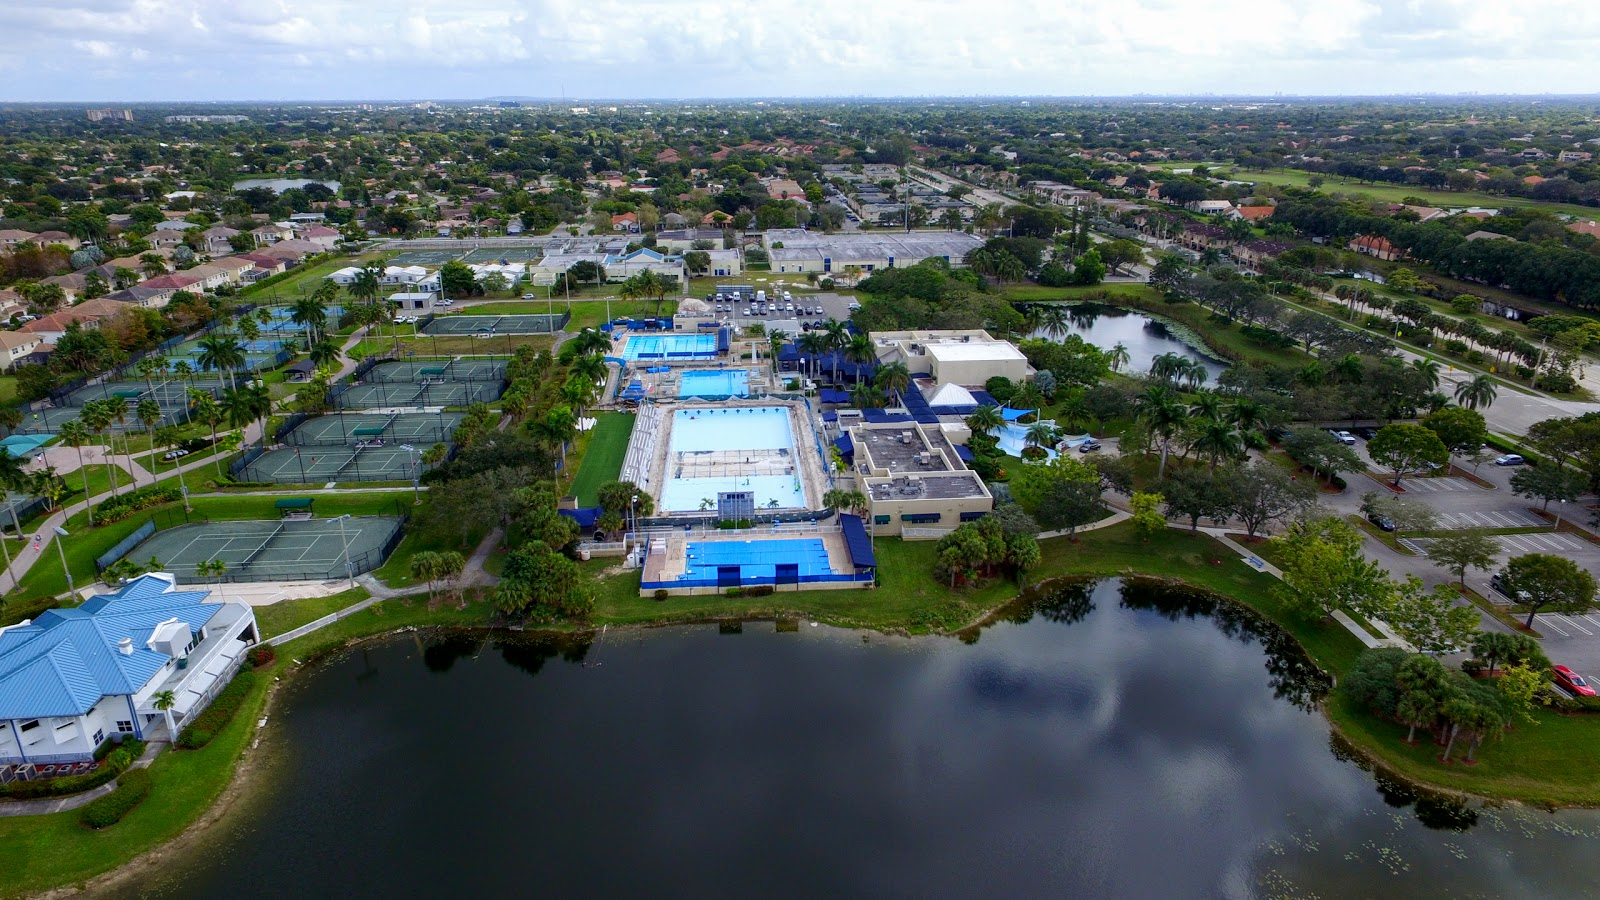 Coral Springs Aquatic Complex - photo